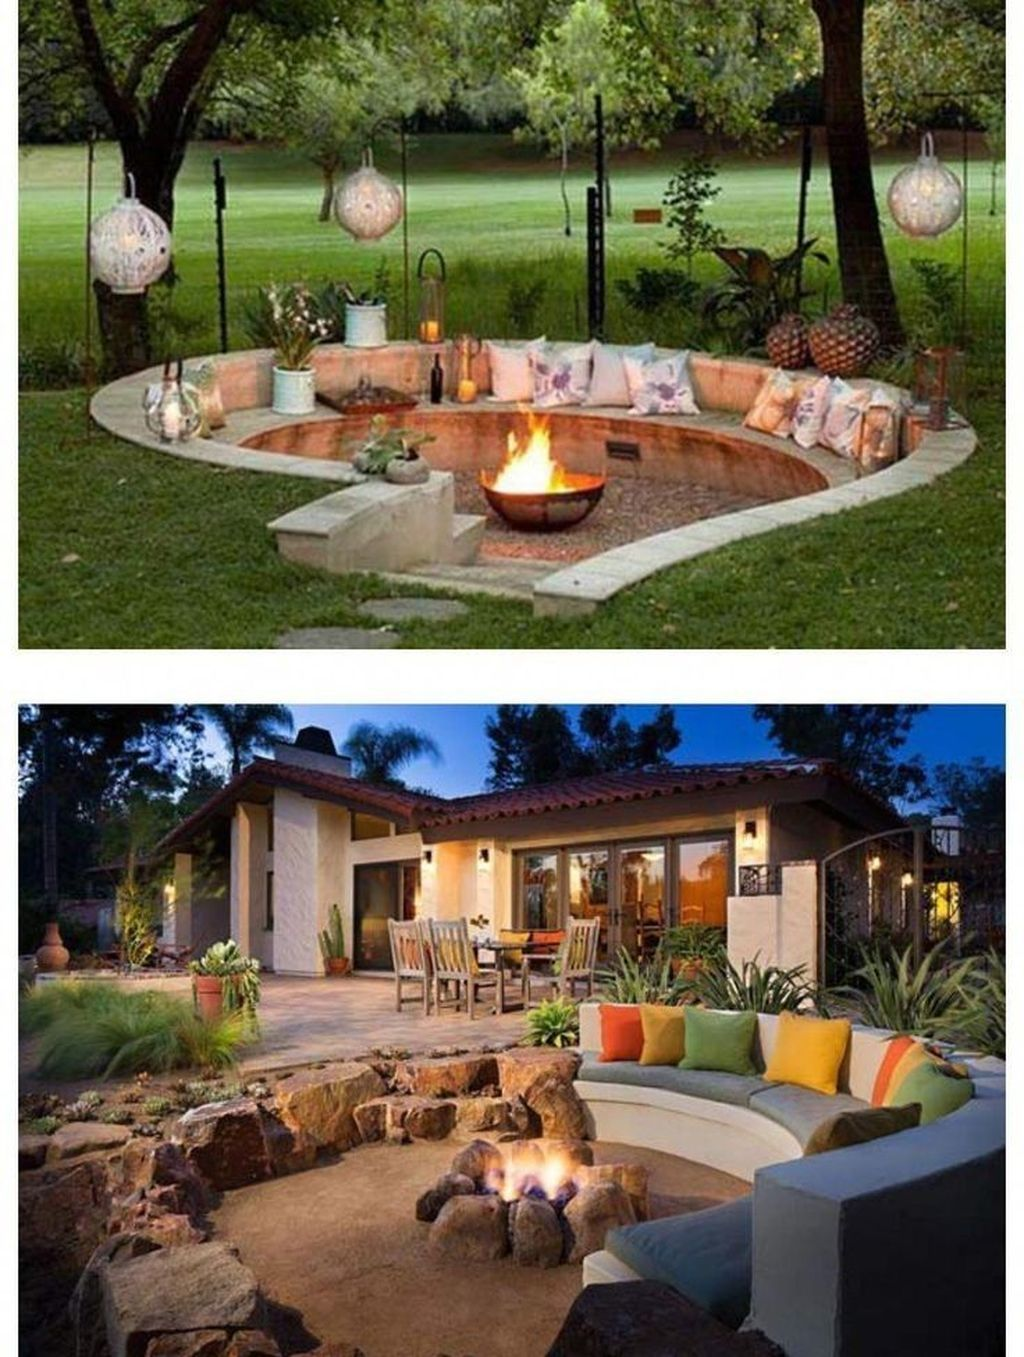 36 Stunning Backyard Landscaping Design Ideas To Try This Season